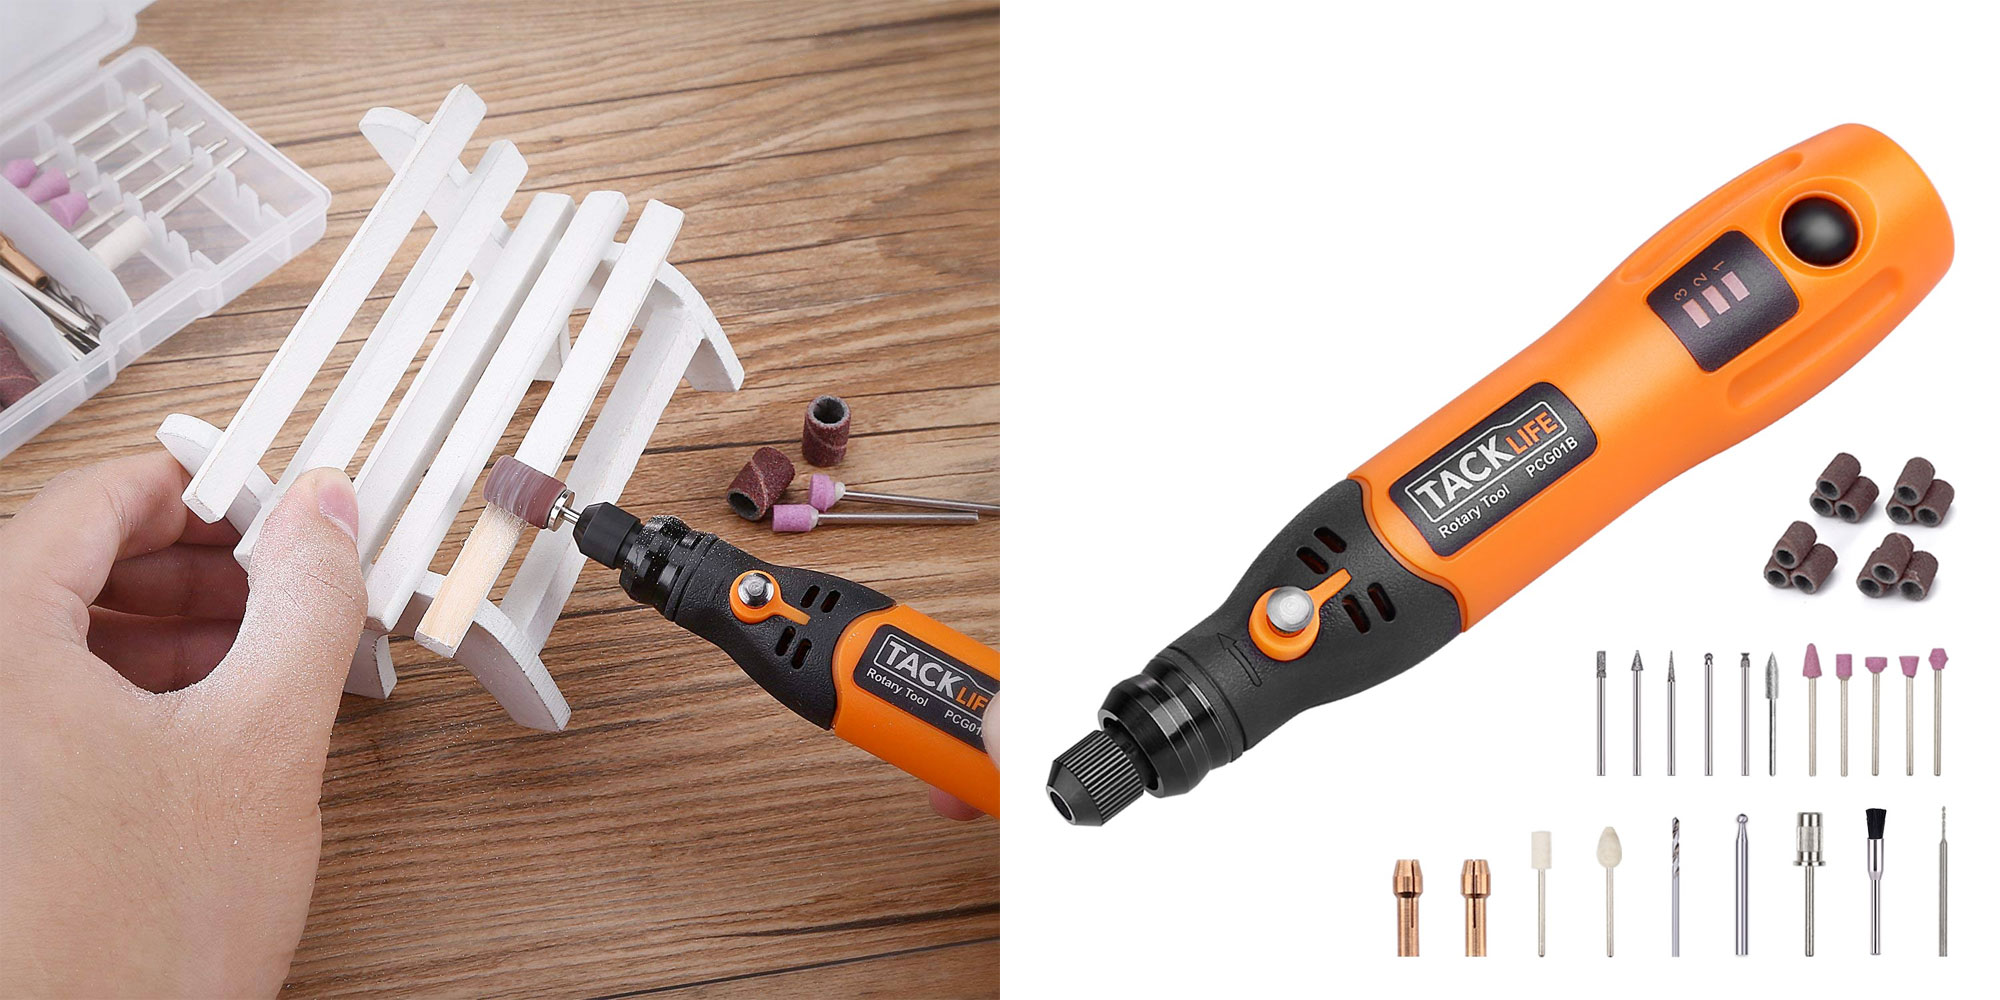 This $16 Prime shipped rotary tool can etch metal or wood, buff surfaces, remove paint, and more